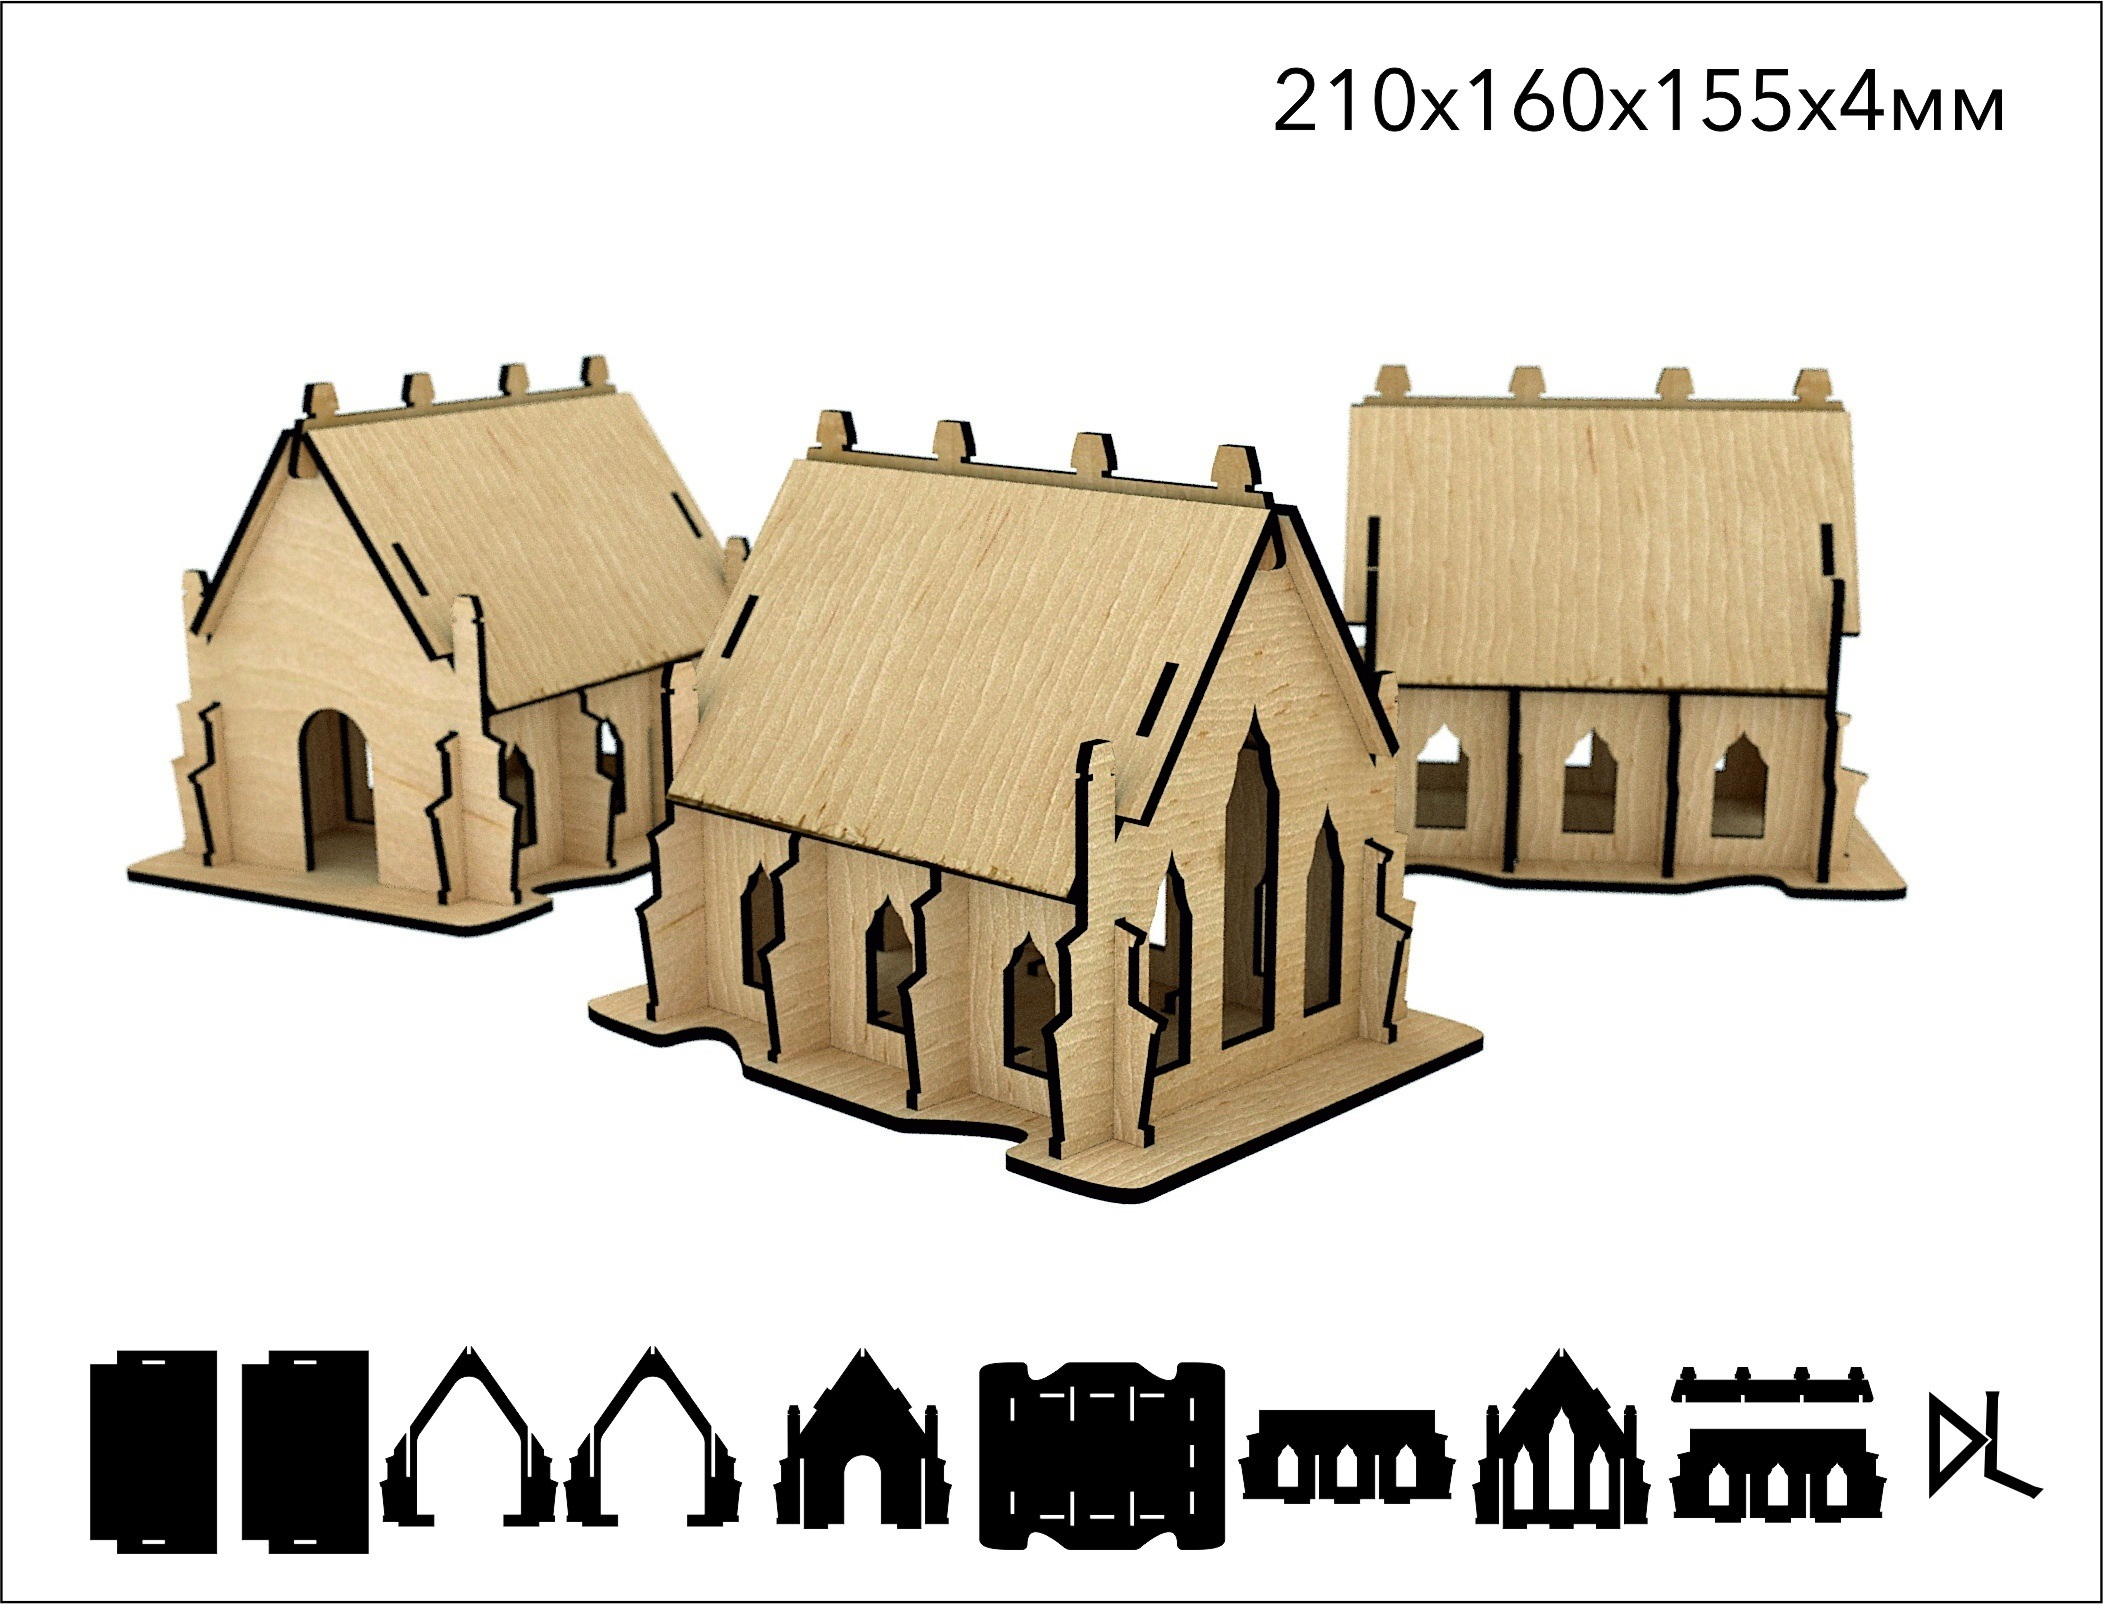 Laser Cut Wooden Cathedral 3D Model 4mm Free Vector